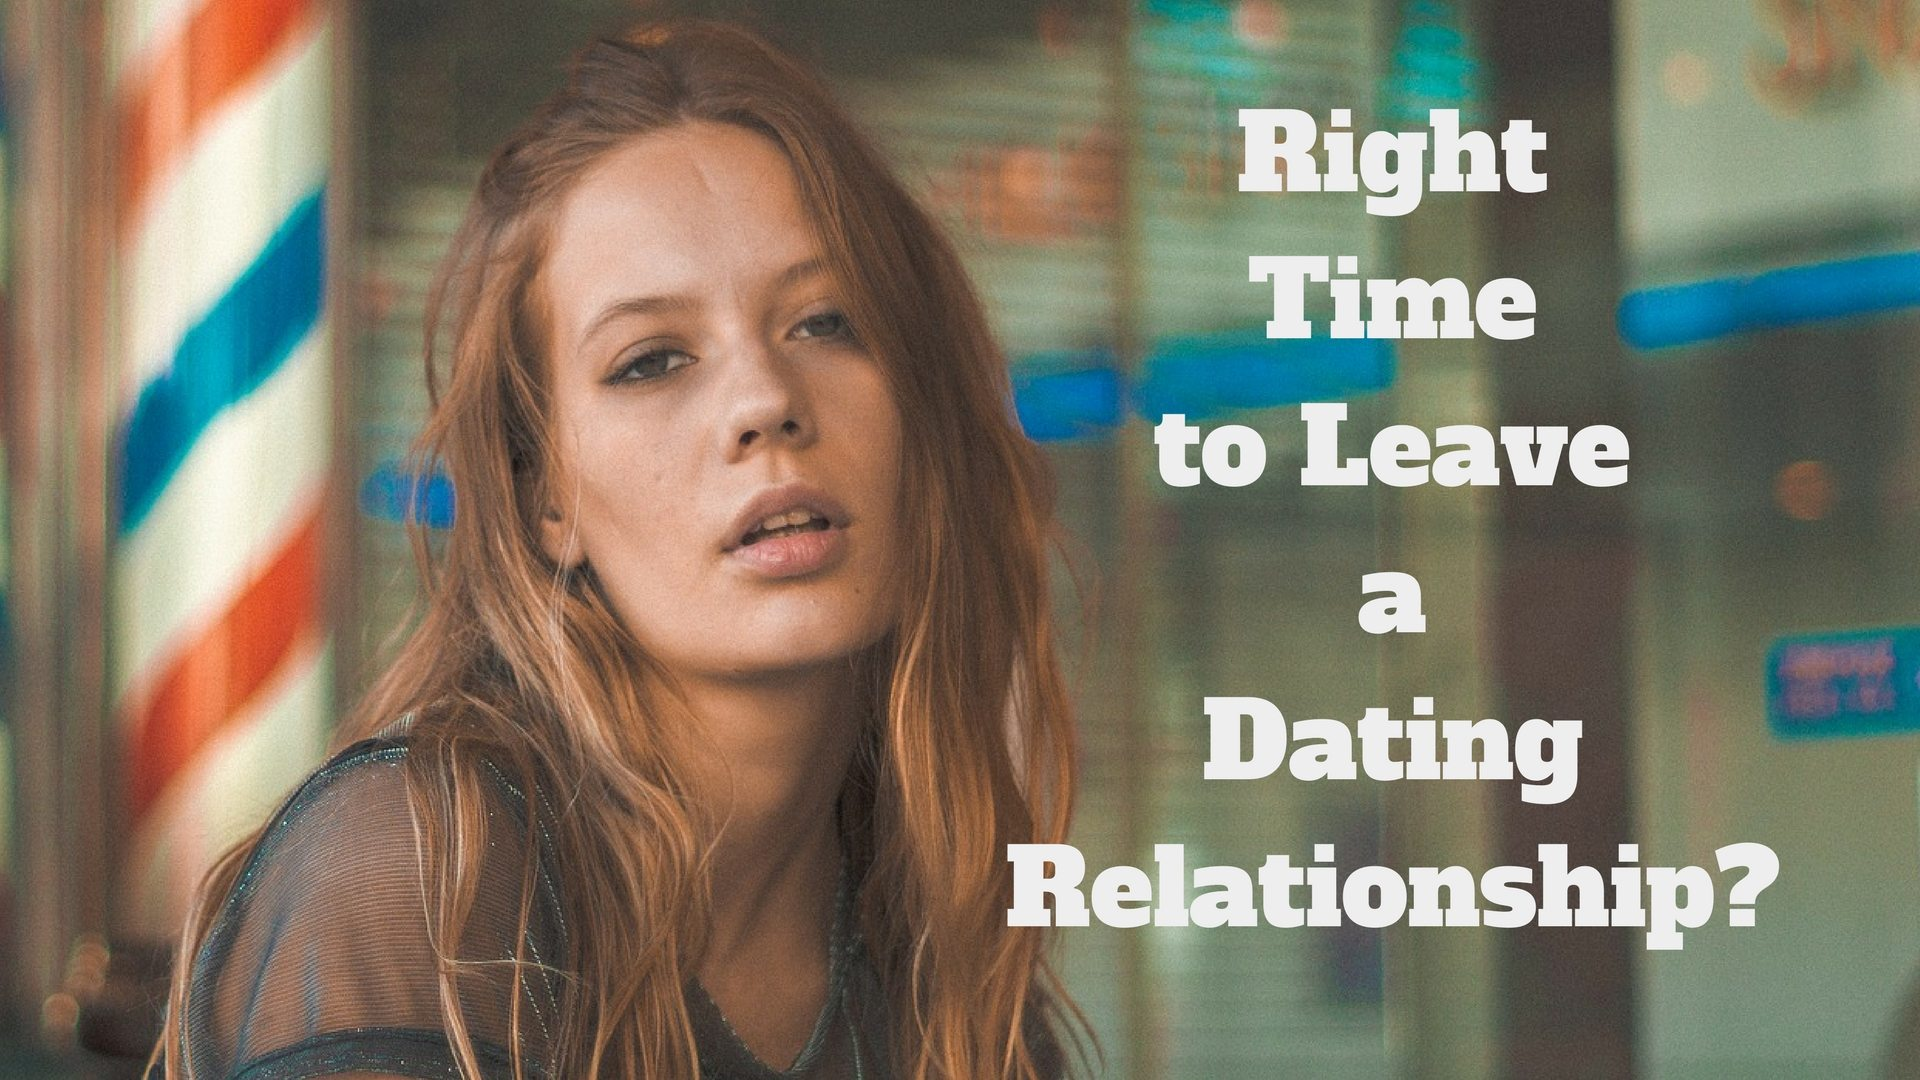 Right Time Leave Dating Relationship? Canva - Pixabay background